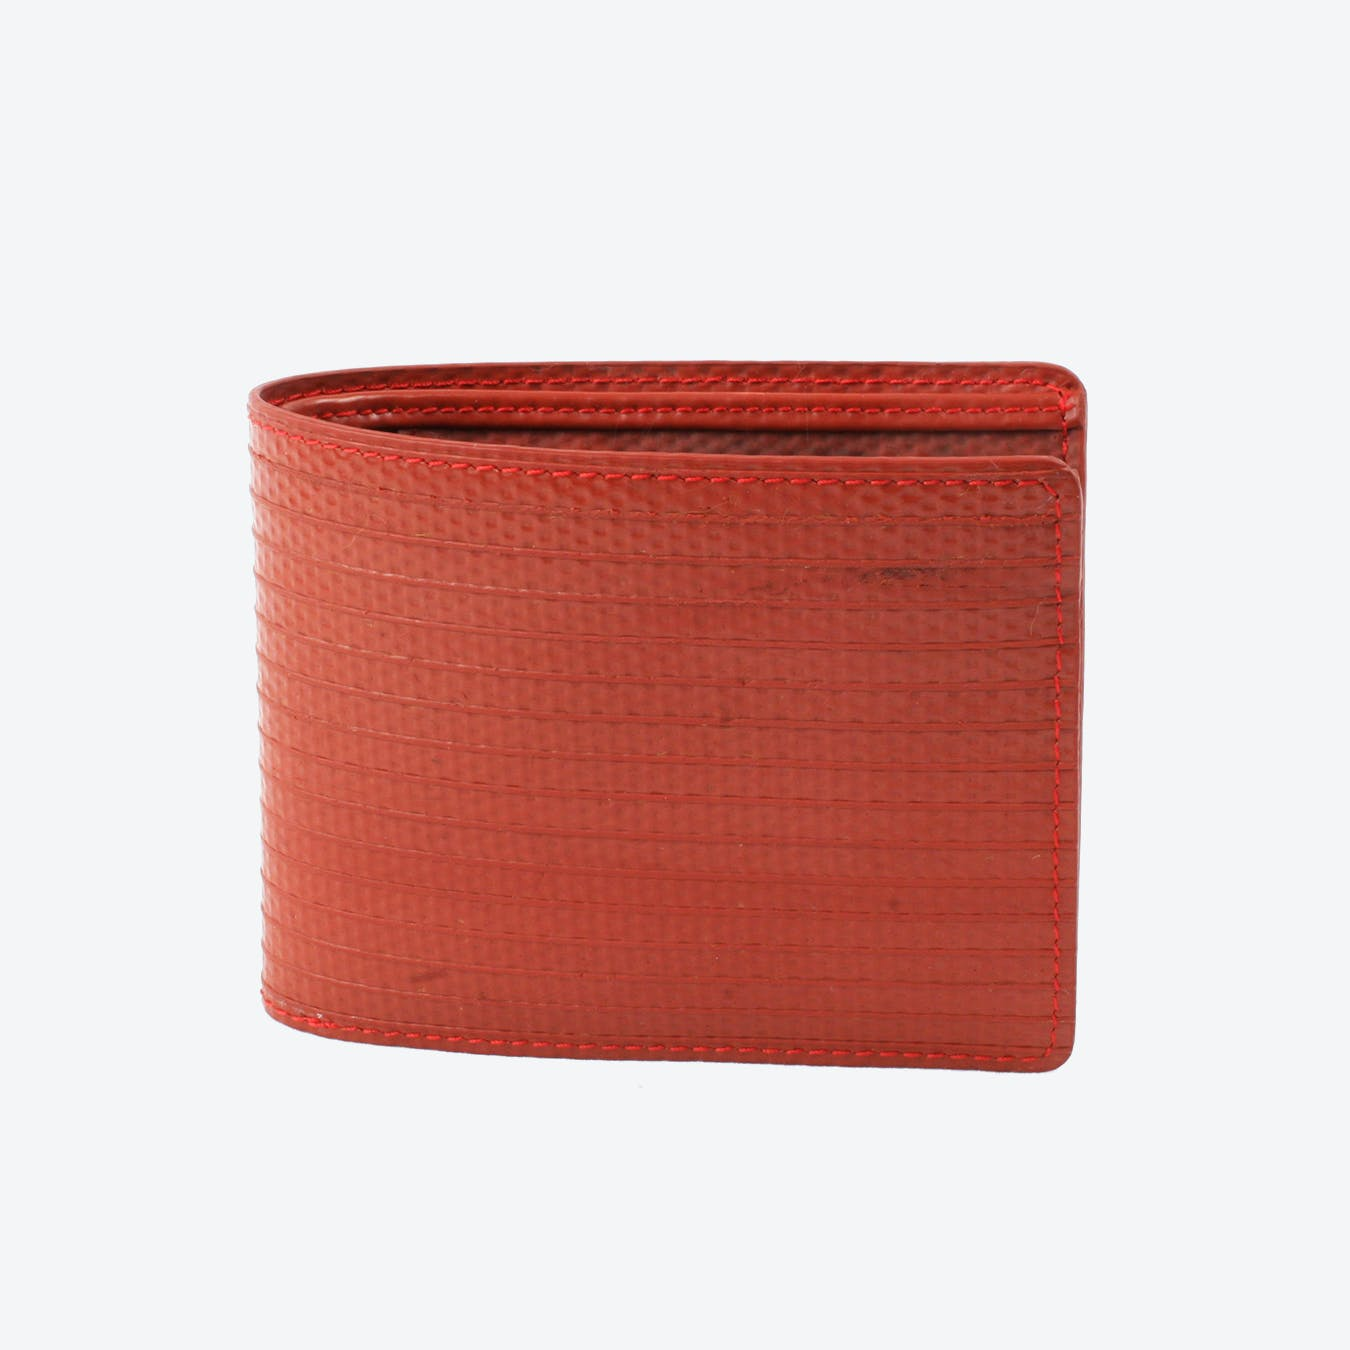 Billfold Wallet in Red Fire-Hoses (w/o Coin Pocket)